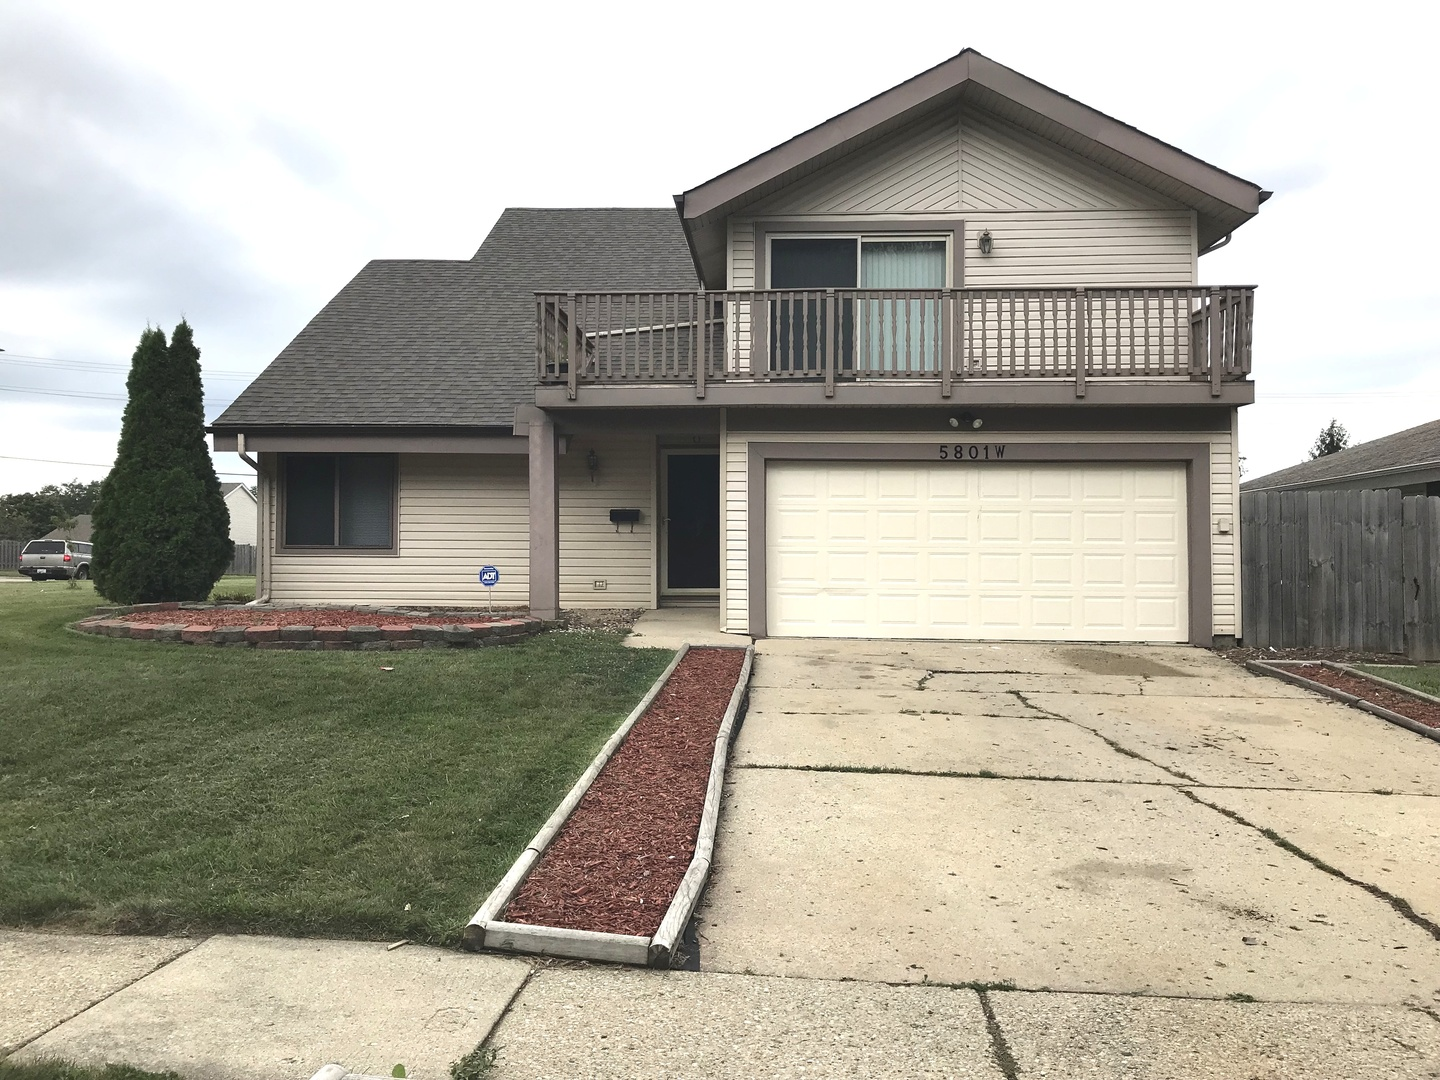 5801 West ANDOVER Drive, Hanover Park, Illinois